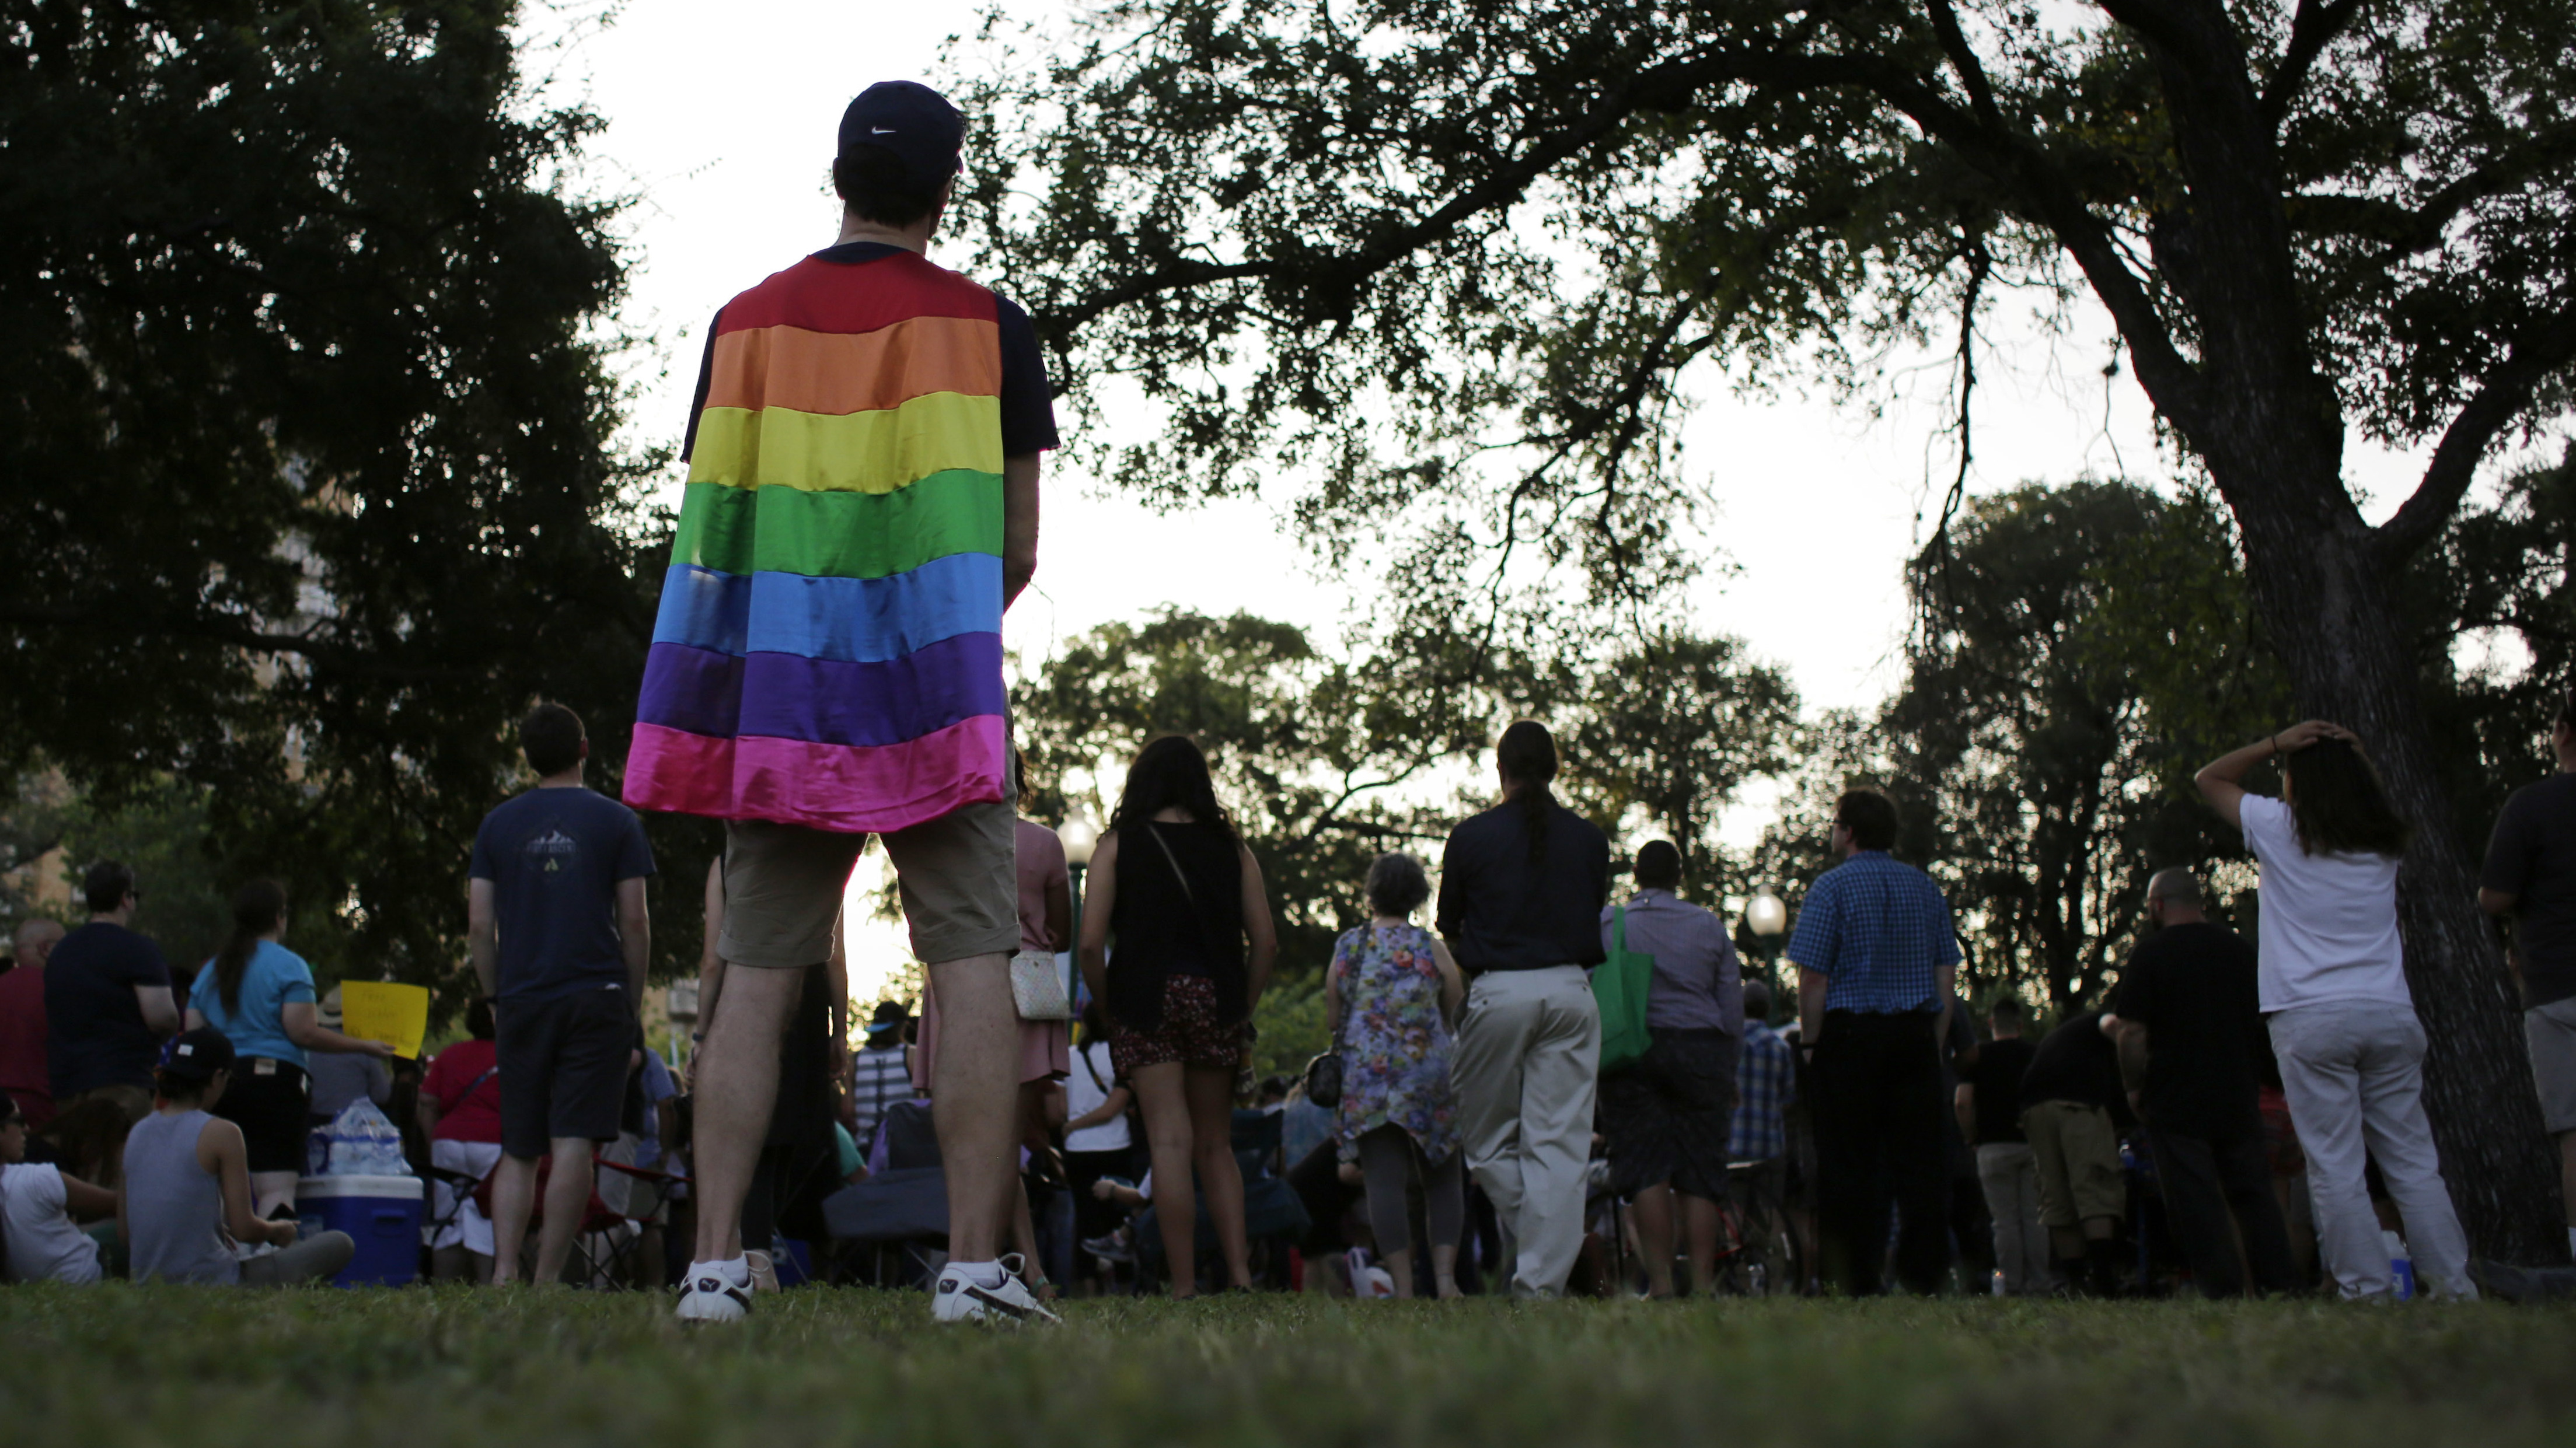 Omar Mateen and wife texted during Orlando rampage